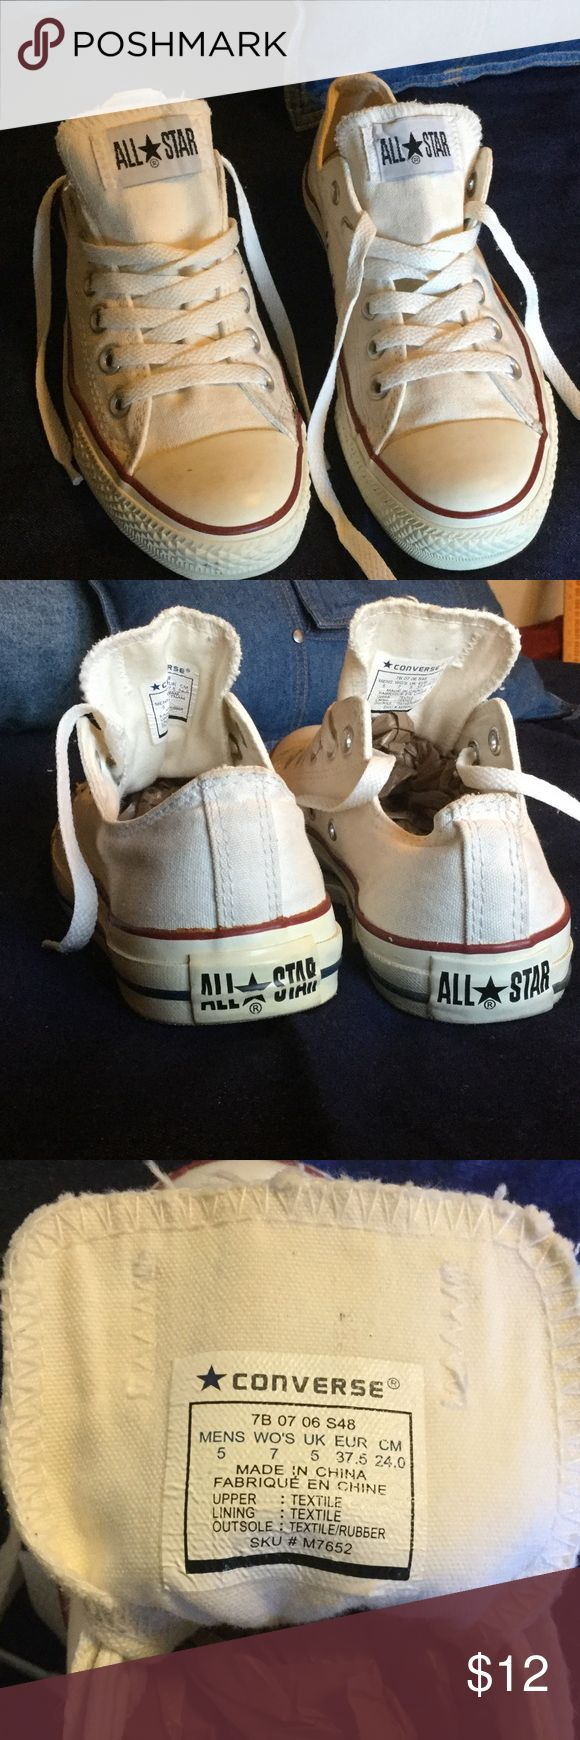 Converse All Stars White Ladies 7 Men's 5 These used Converse All Stars are in great shape. They are ladies sz 7 or men's sz 5. No damage, clean with good laces. Converse  Shoes Athletic Shoes